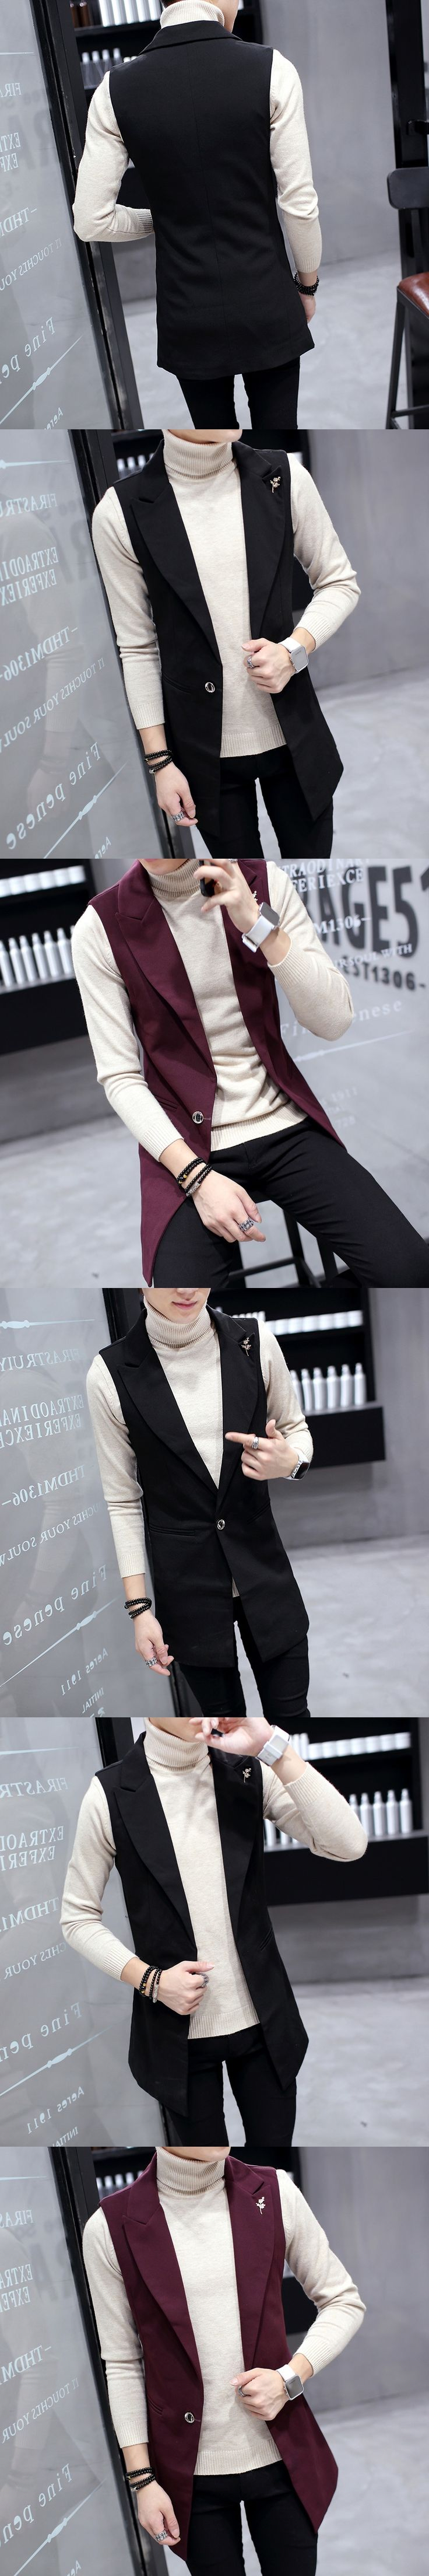 New 2017 Mens slender Vests  Long section Vest one Buttons Wedding Prom Waistcoat Formal Business Vest Casual Wear